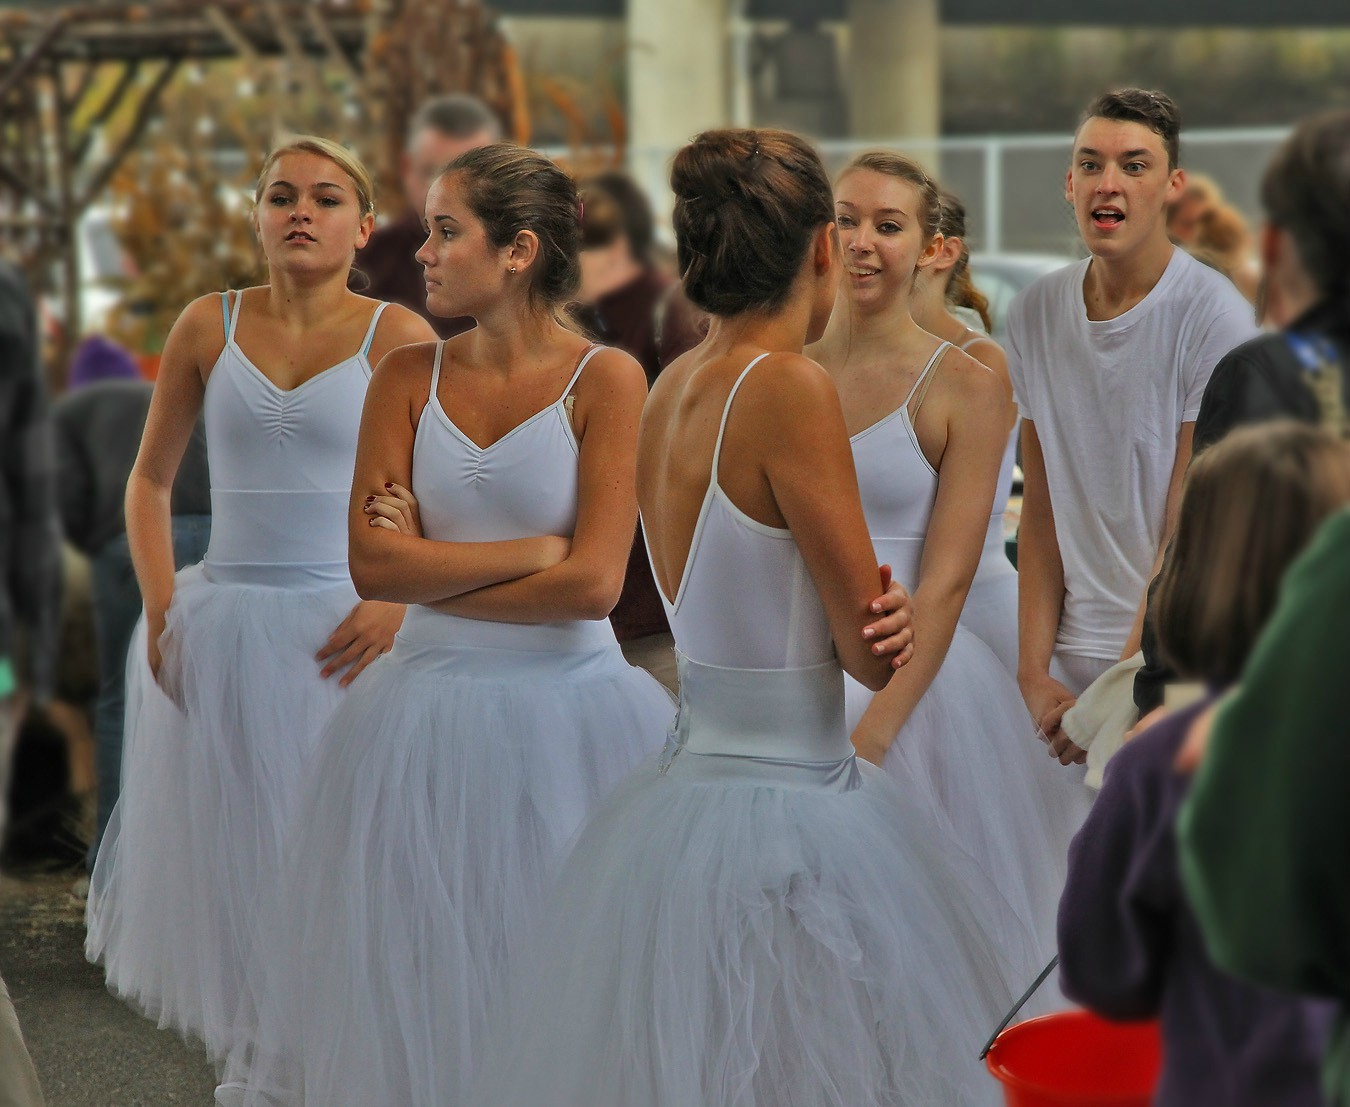 ballet on a cold day img aw author sava gregory and verena